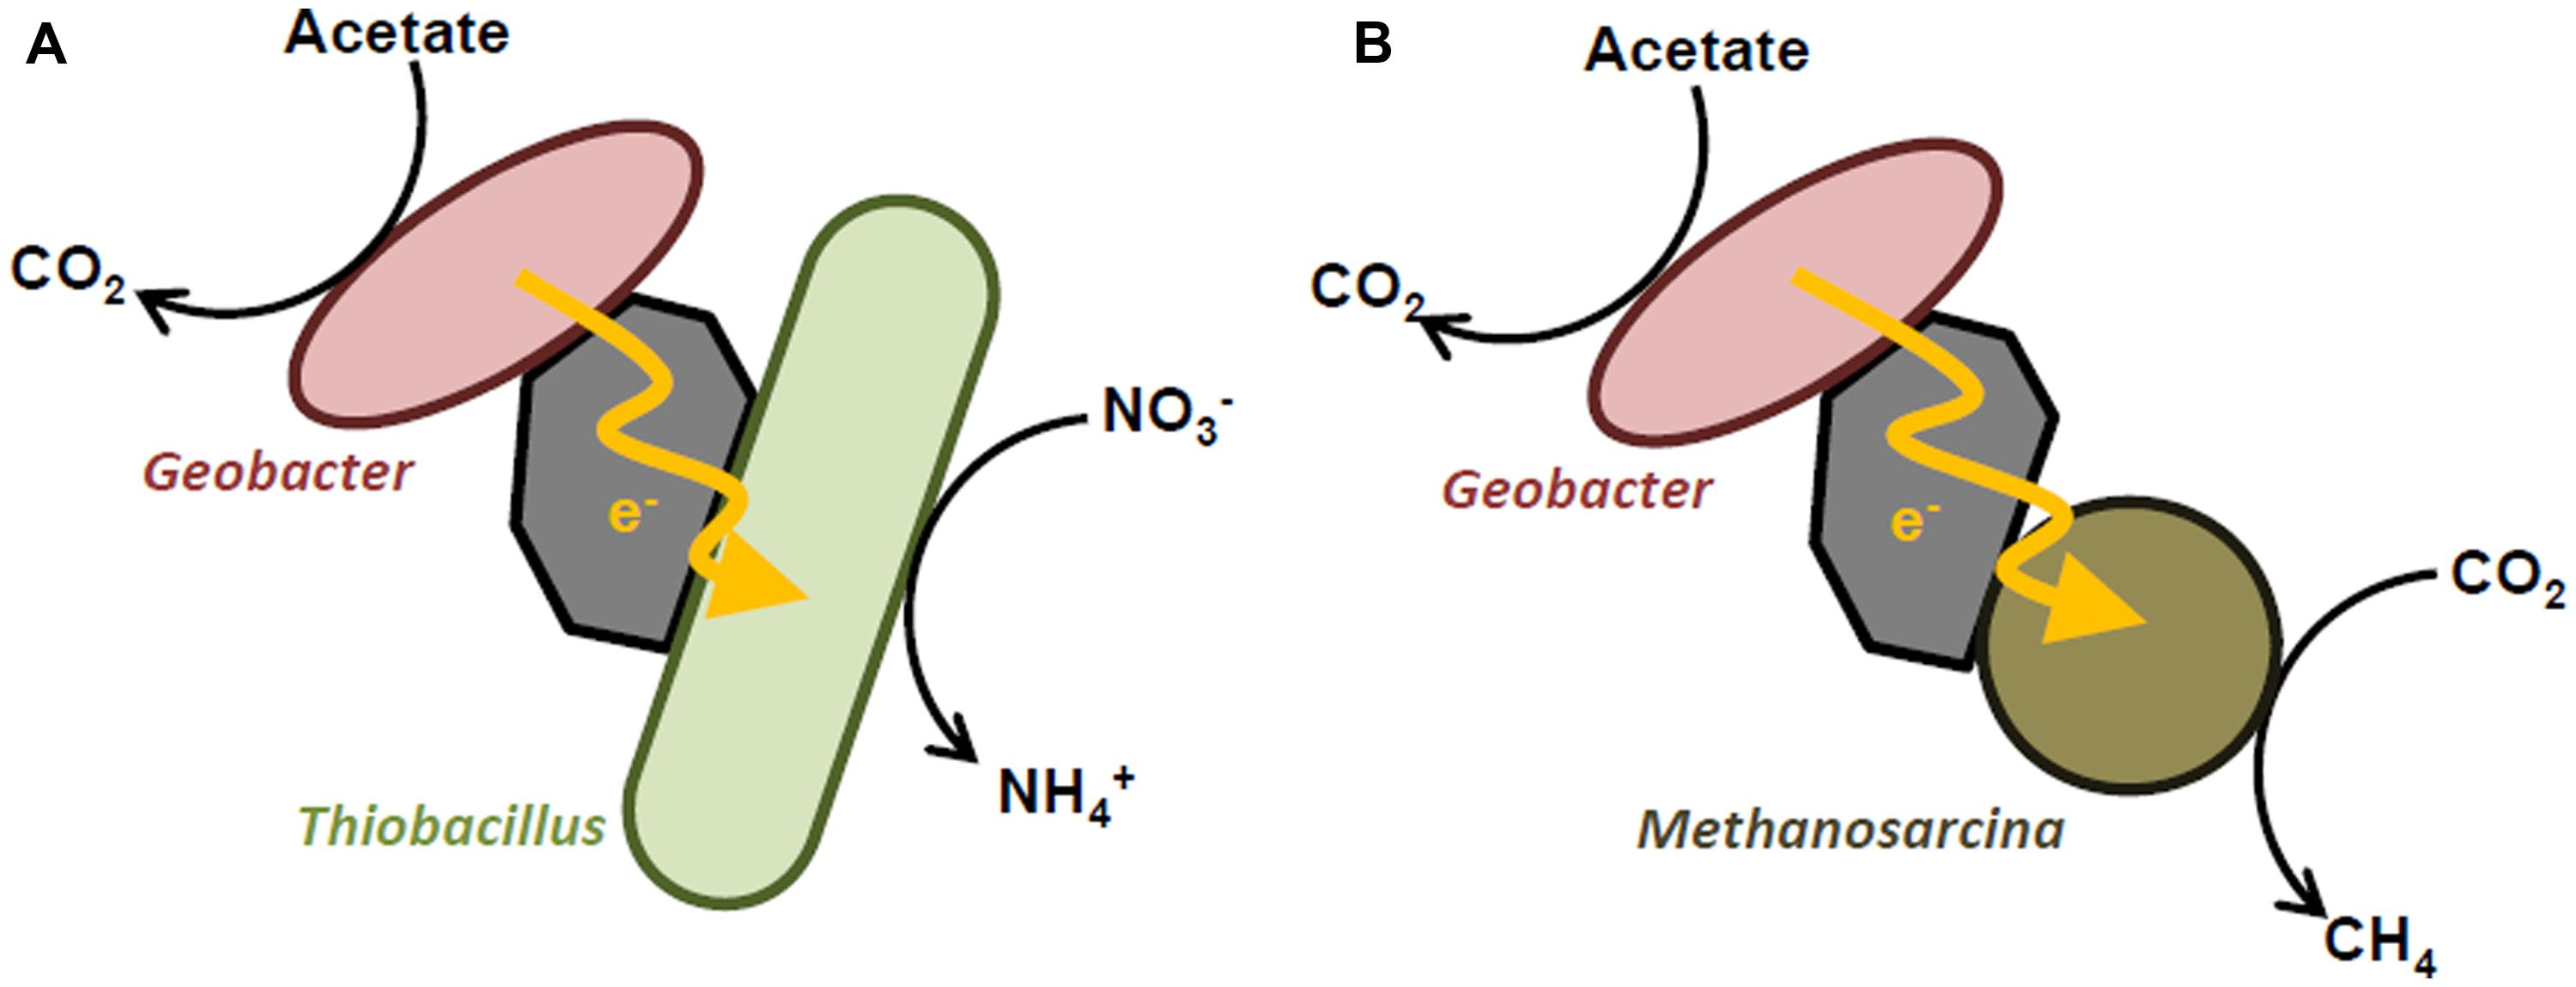 Frontiers Microbial Interspecies Interactions Recent Findings In Kato Signal Wiring Diagram Figure 2 Schematic